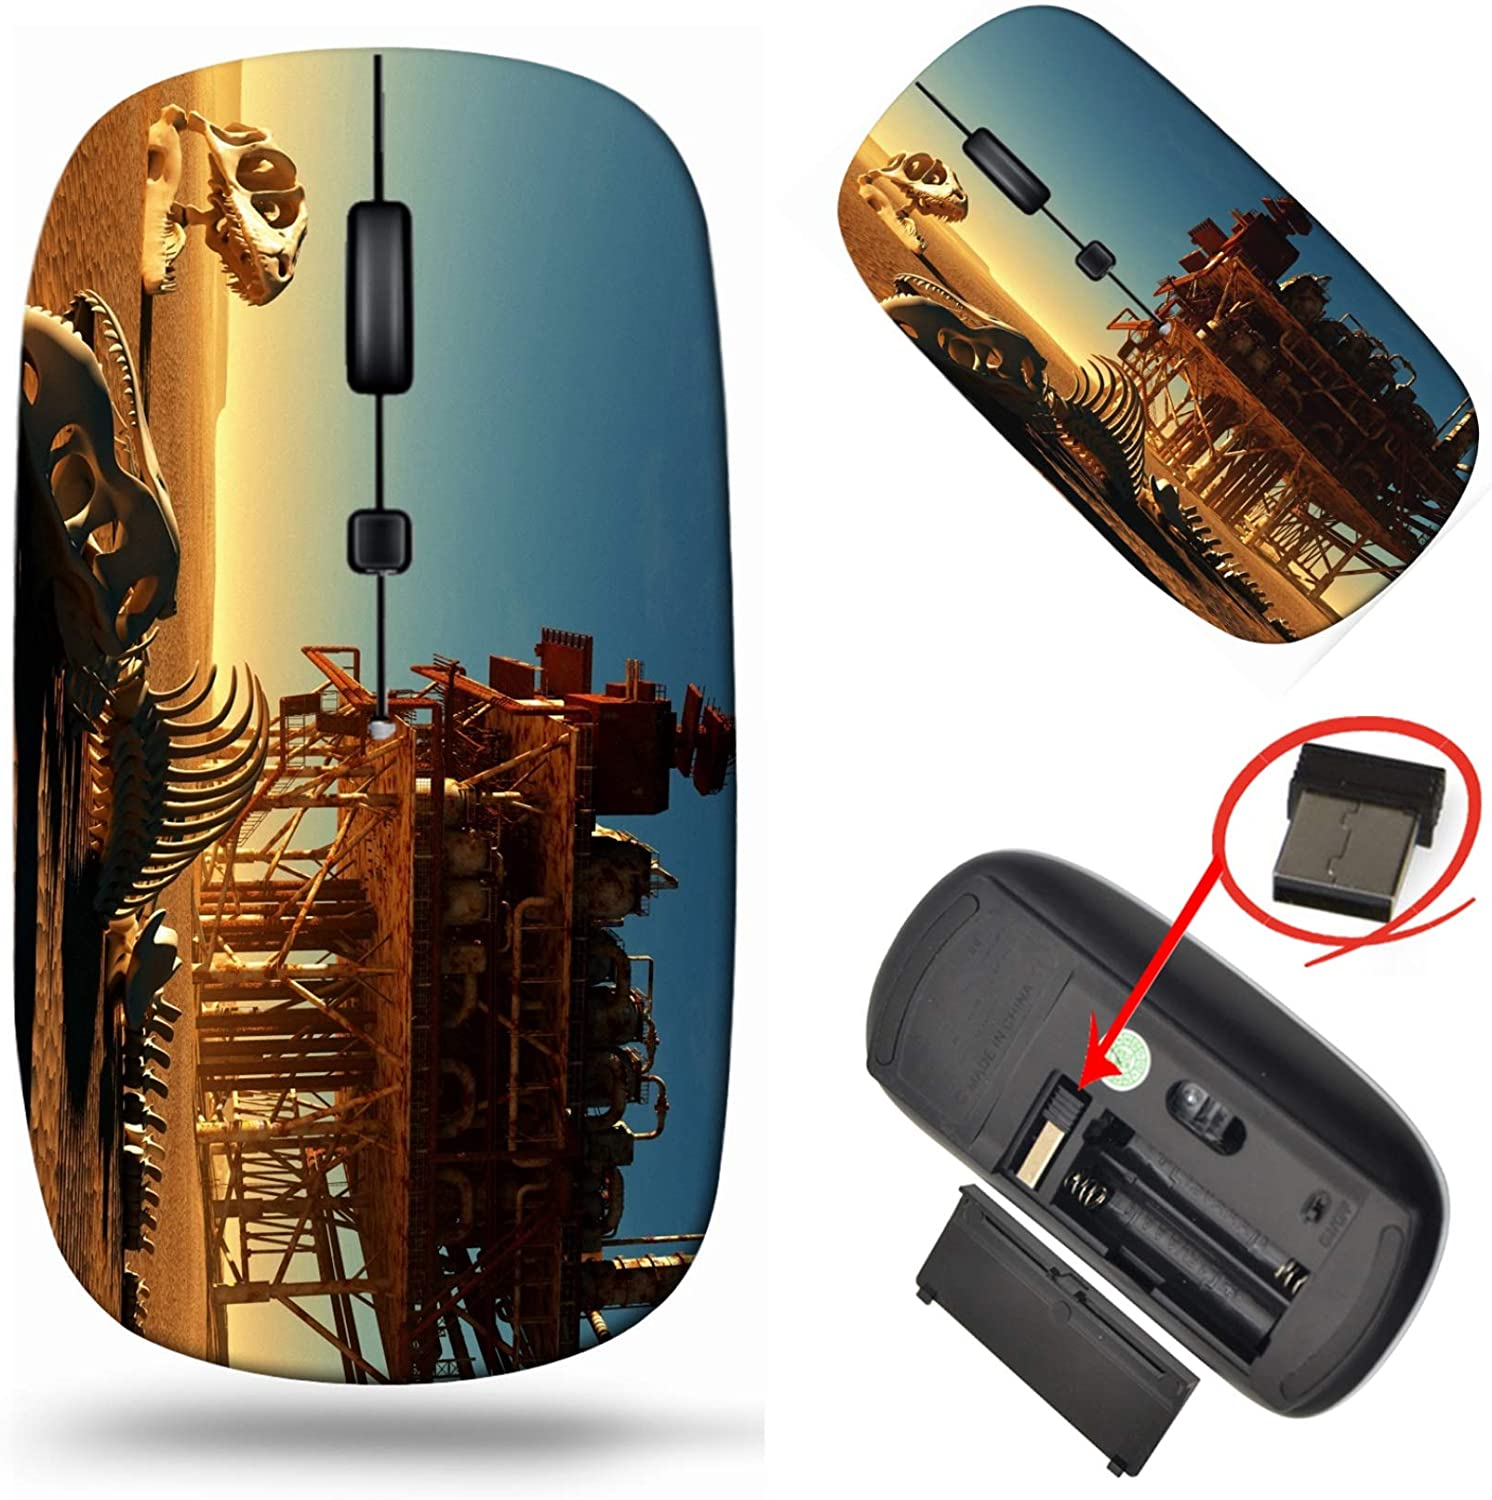 MSD Computer Wireless Mouse Tra USB Japan's largest assortment 2.4G Outlet SALE Laptop